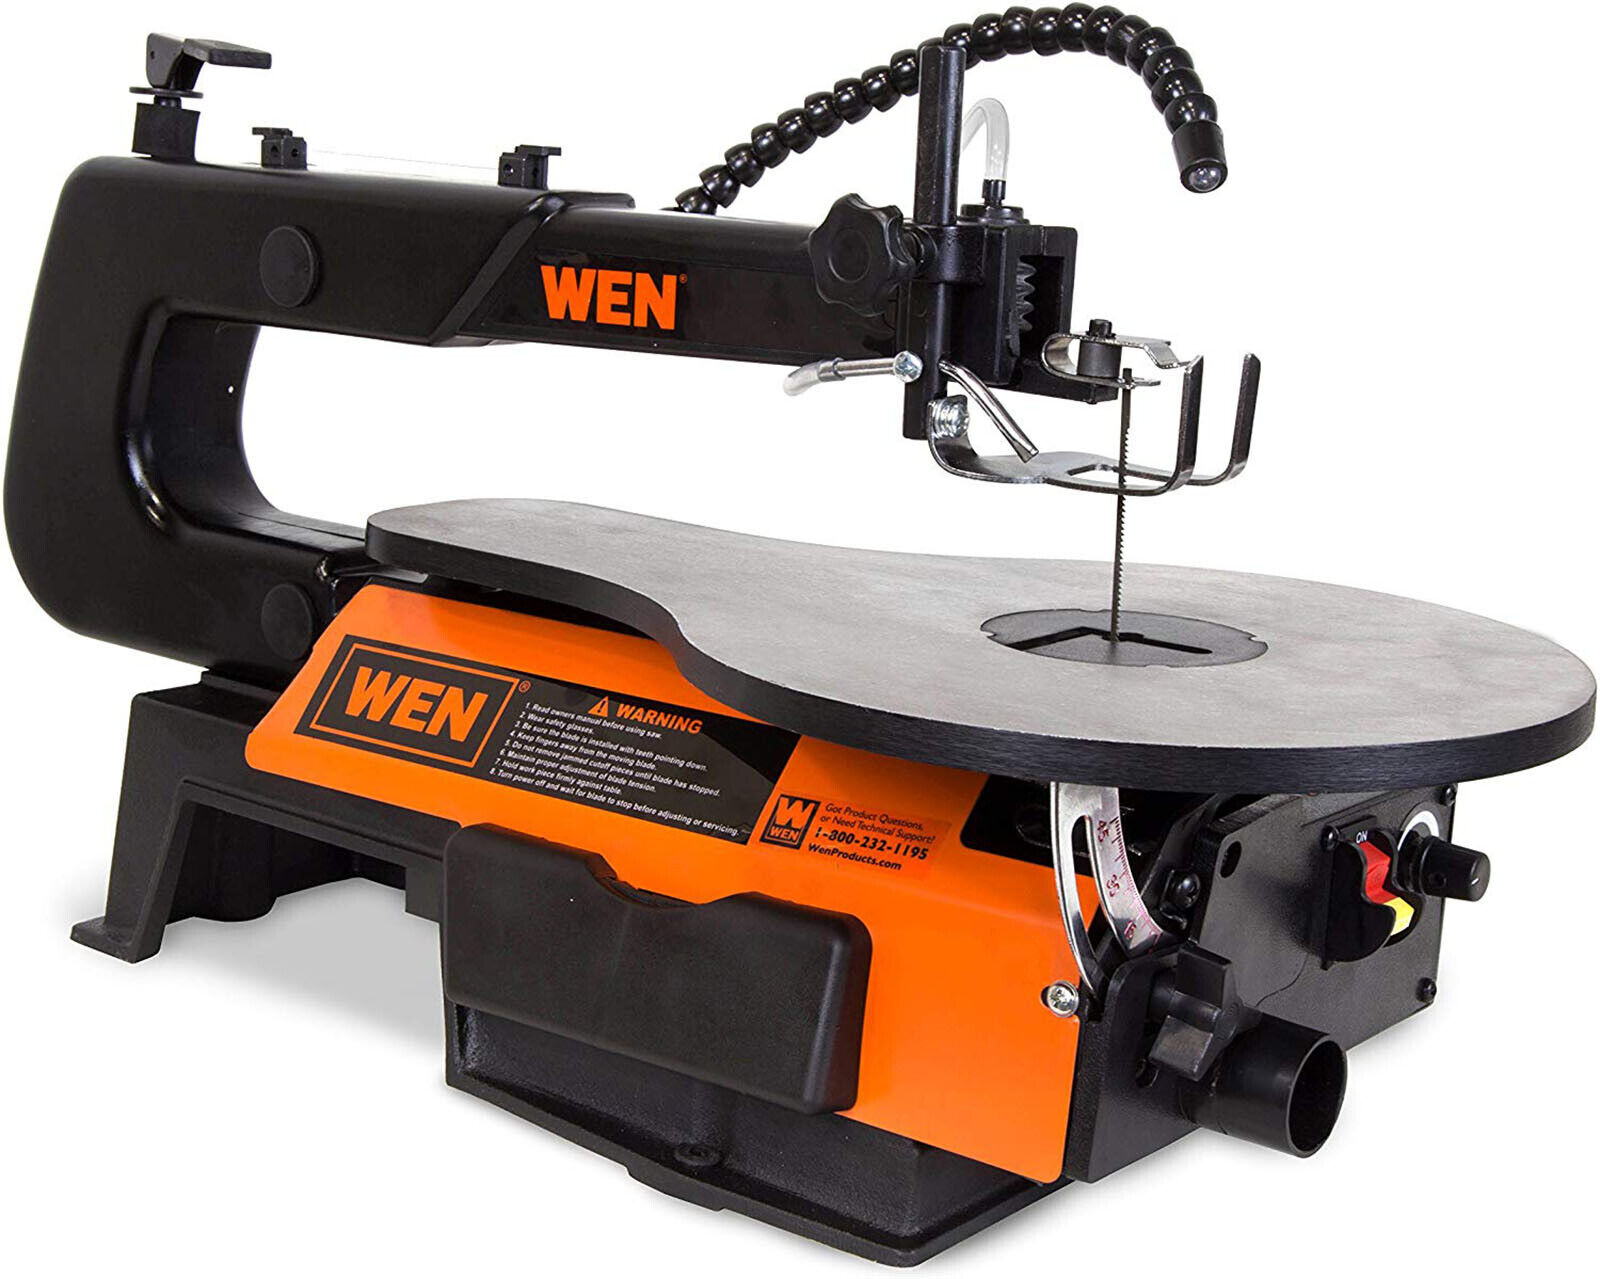 WEN Scroll Saw Two-Direction 550-1600 SPM Variable Speed 16-